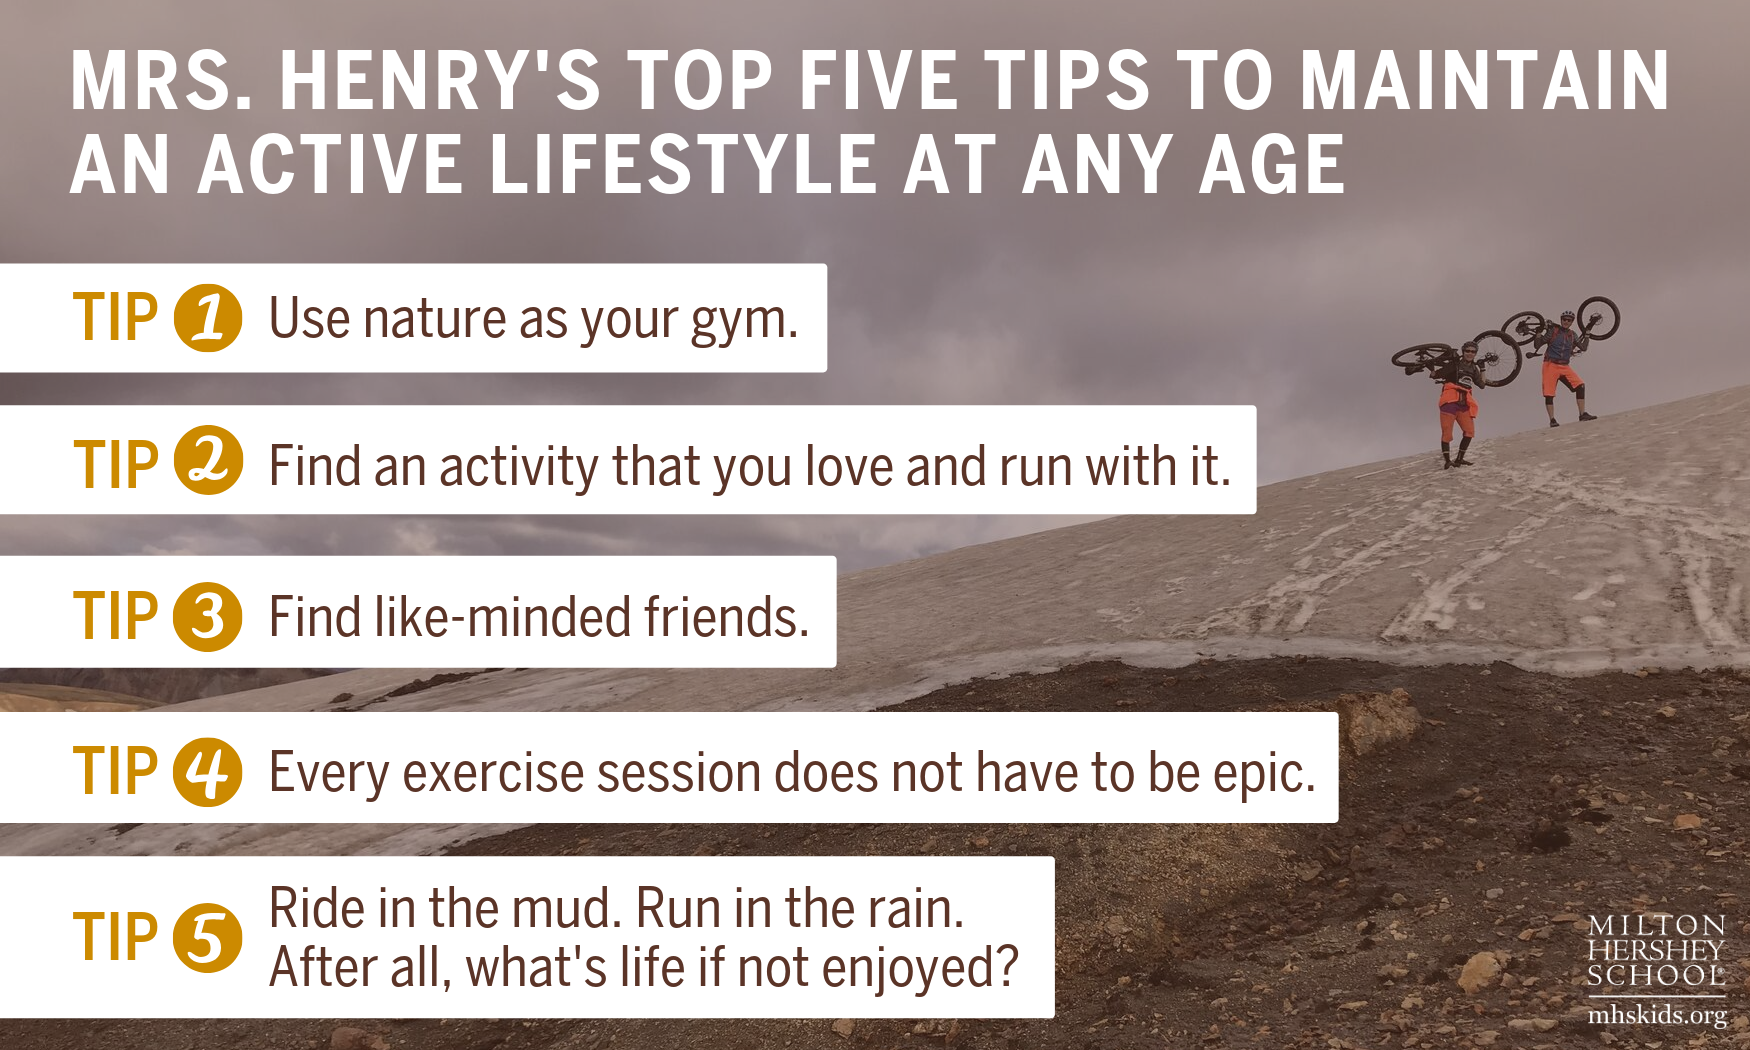 Milton Hershey School teacher, Sharon Henry, shares her five tips to maintain an active lifestyle.